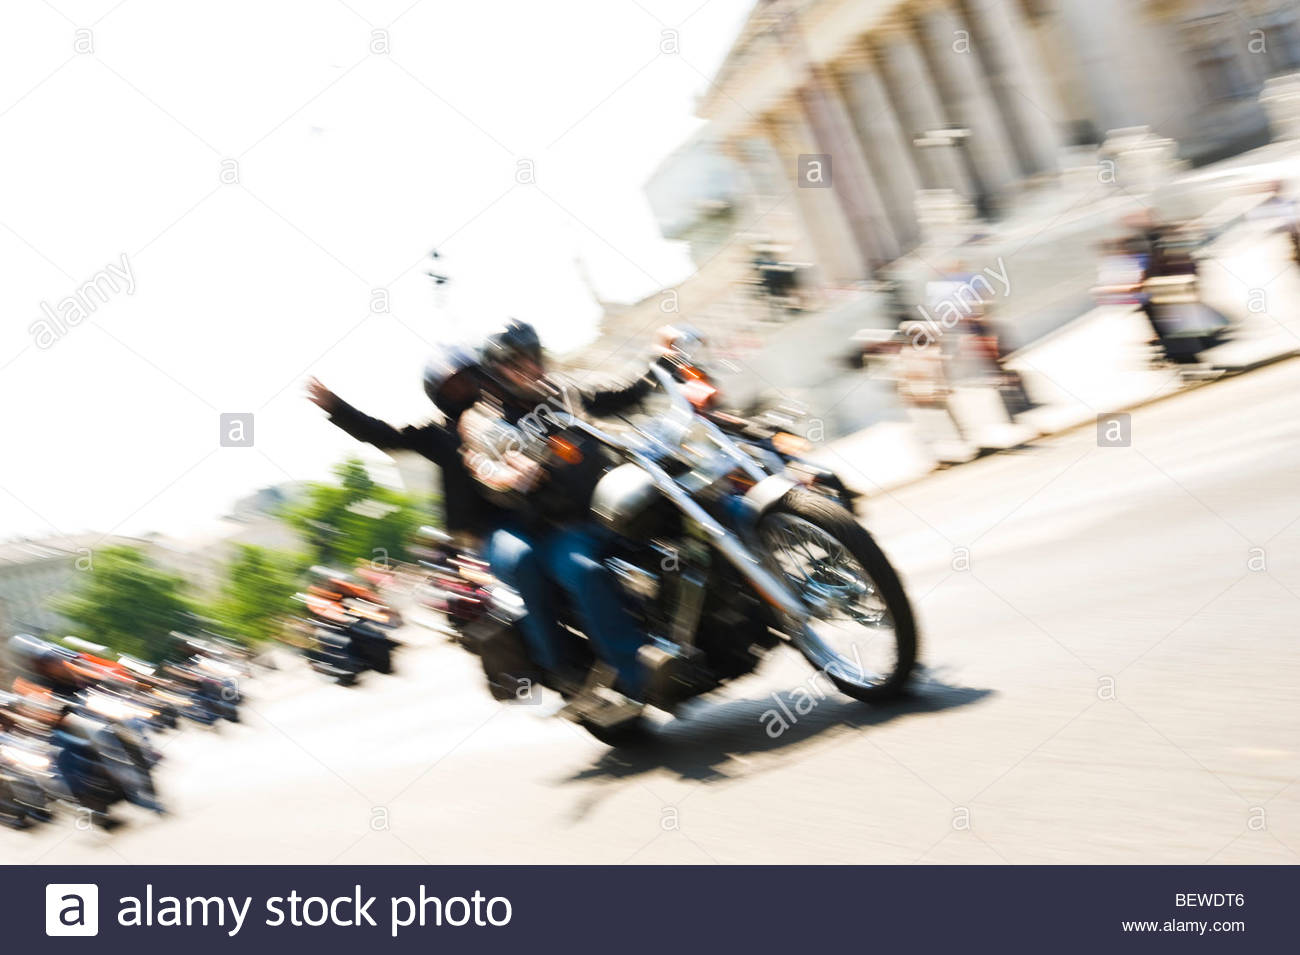 Harley-Davidson riders, parliament building in the background, Vienna, Austria, blurred motion - Stock Image